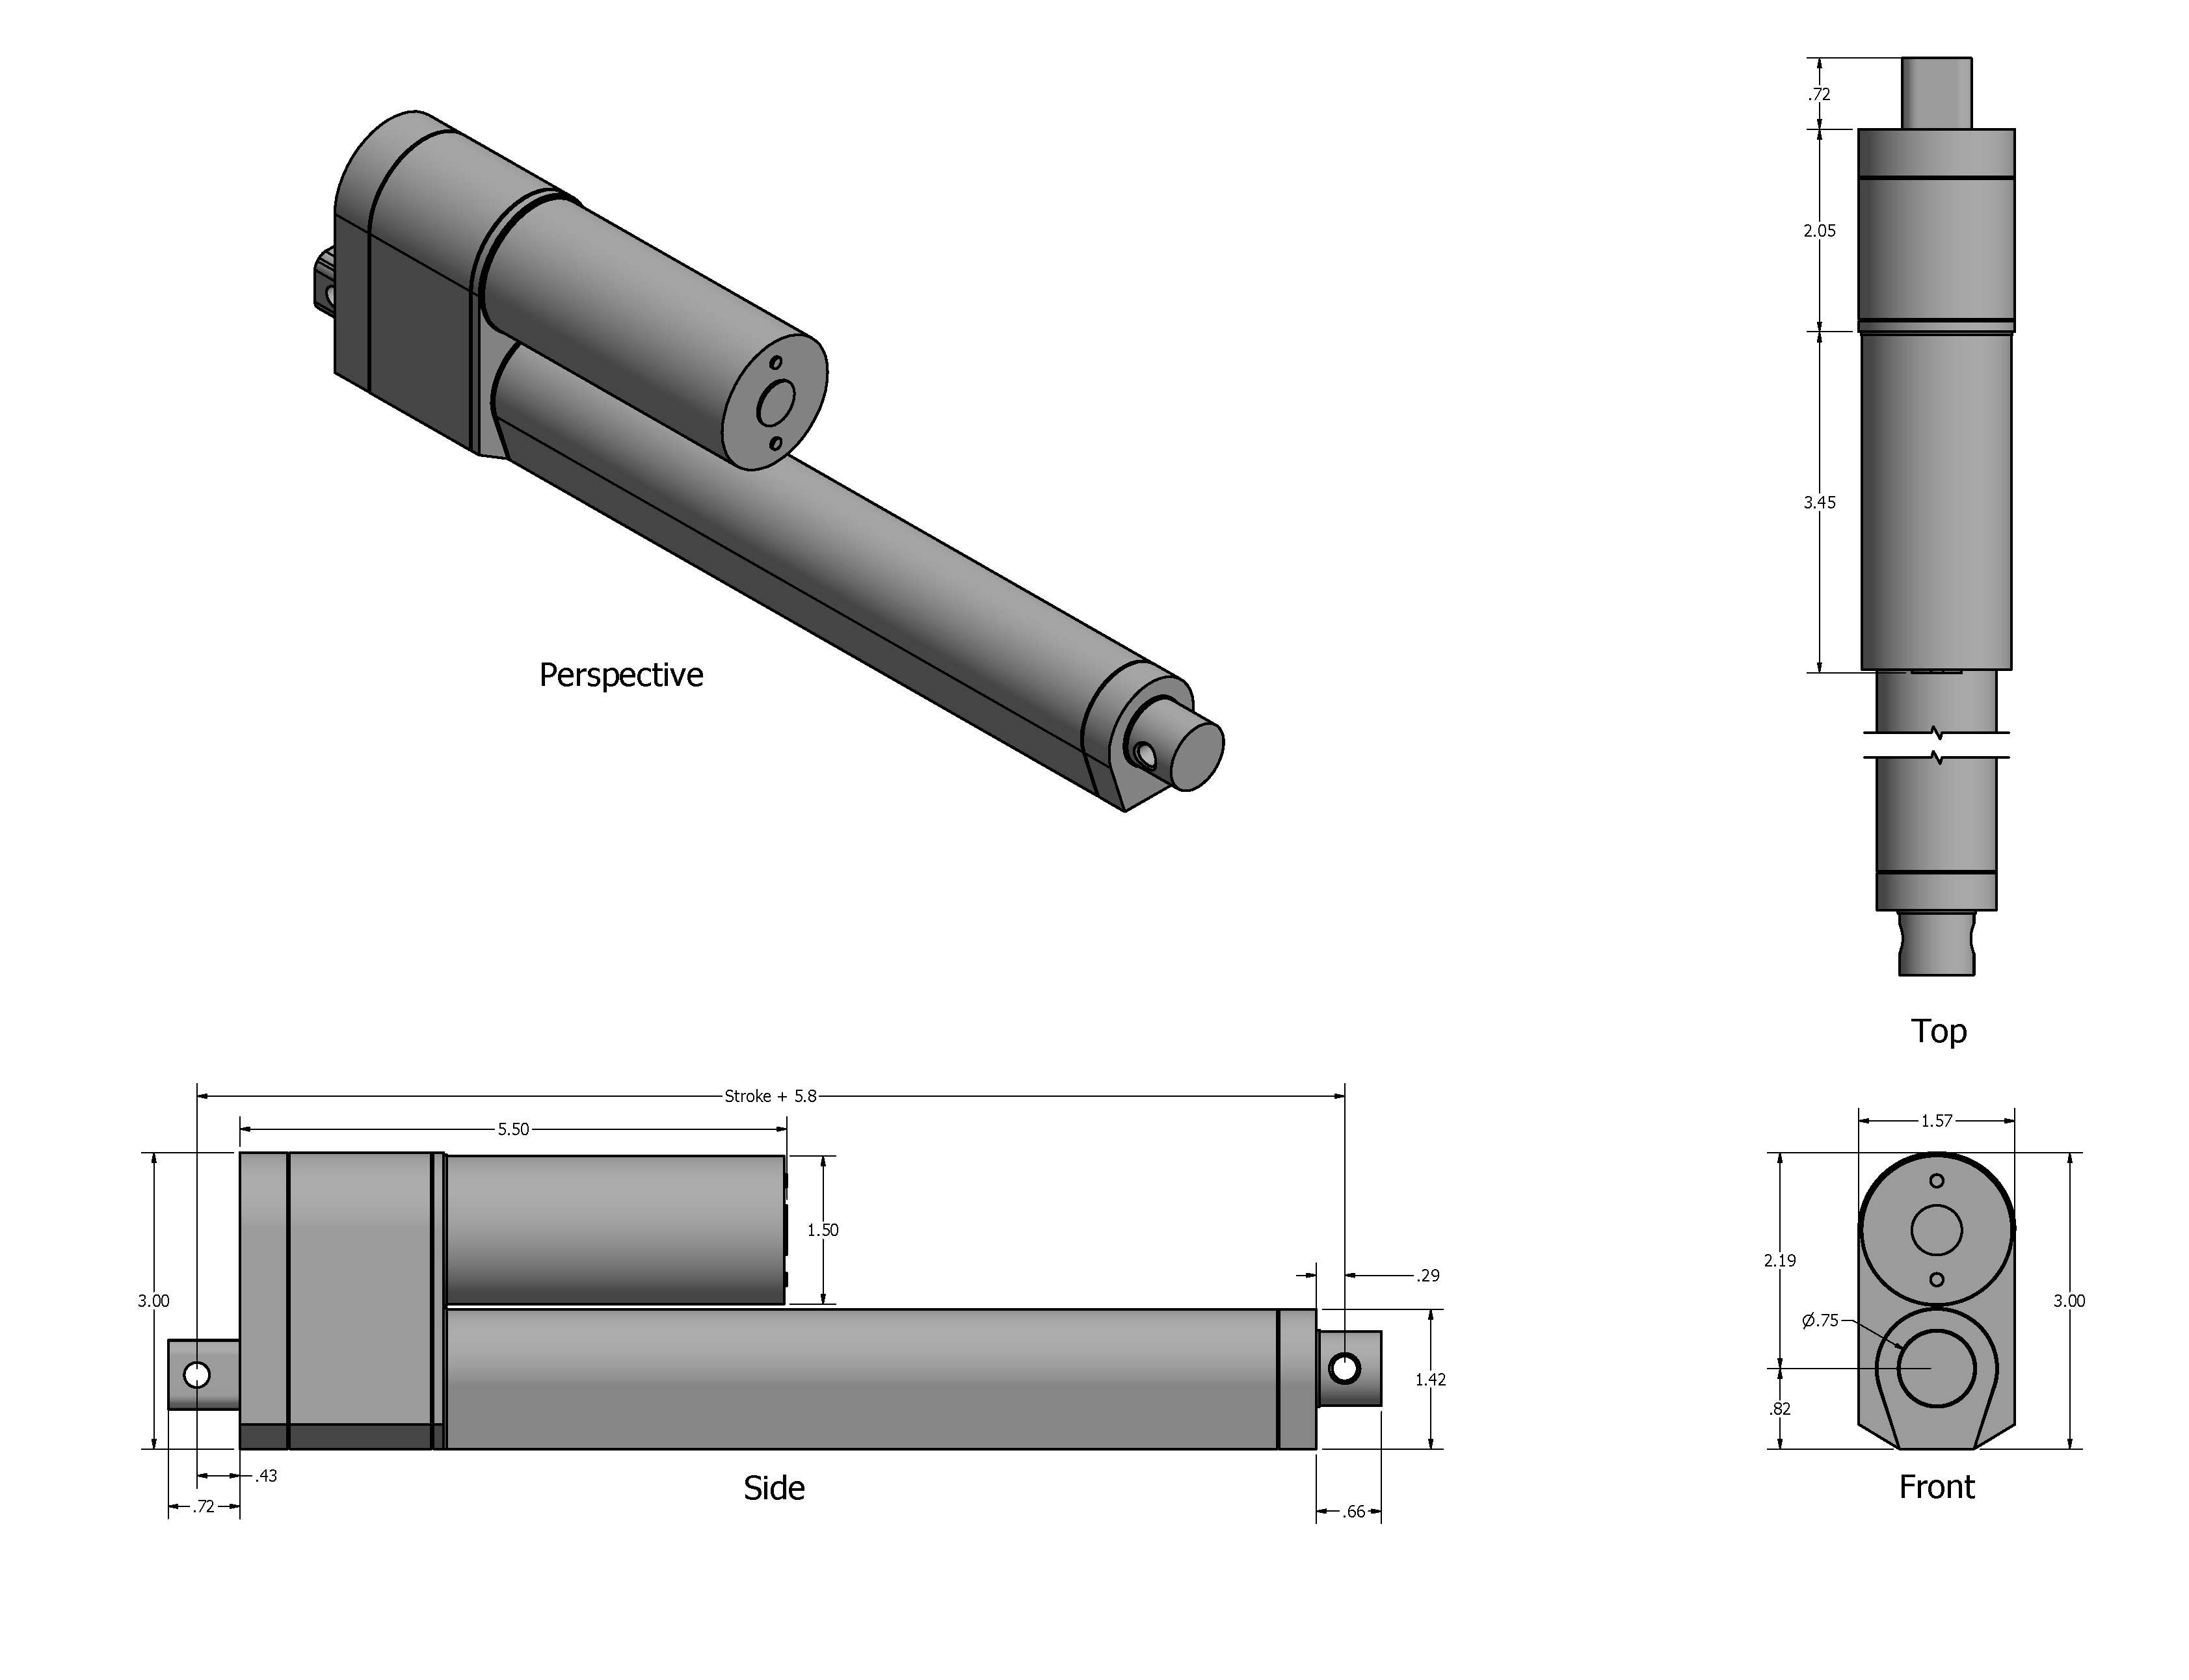 Feedback actuator drawing